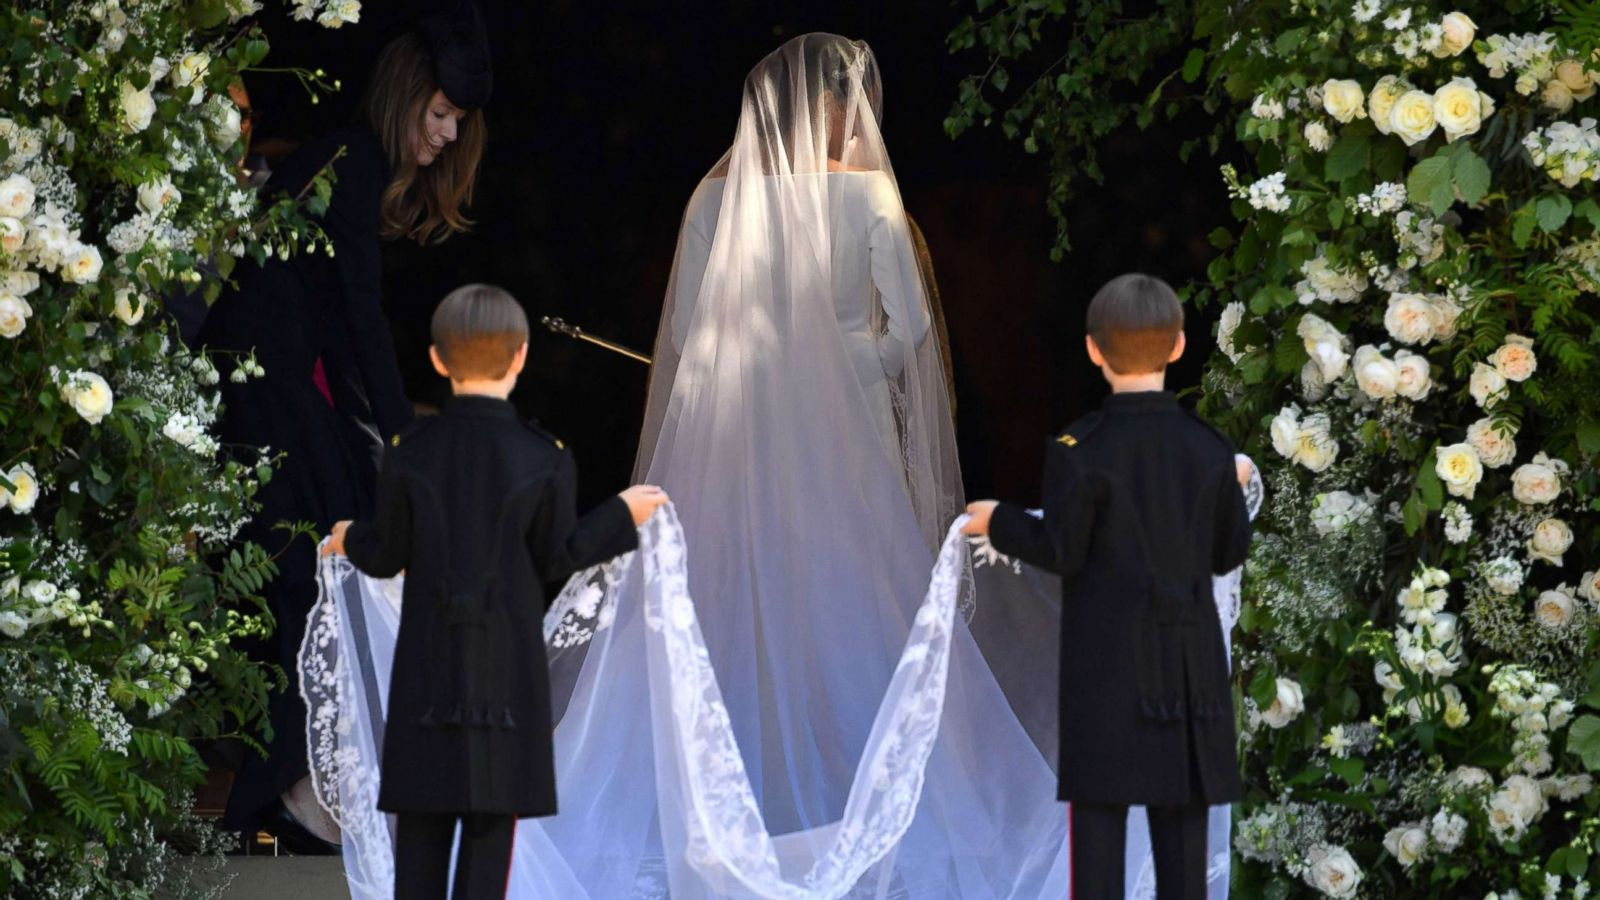 meghan markle s royal wedding dress designers speak out for 1st time on her gowns gma royal wedding dress designers speak